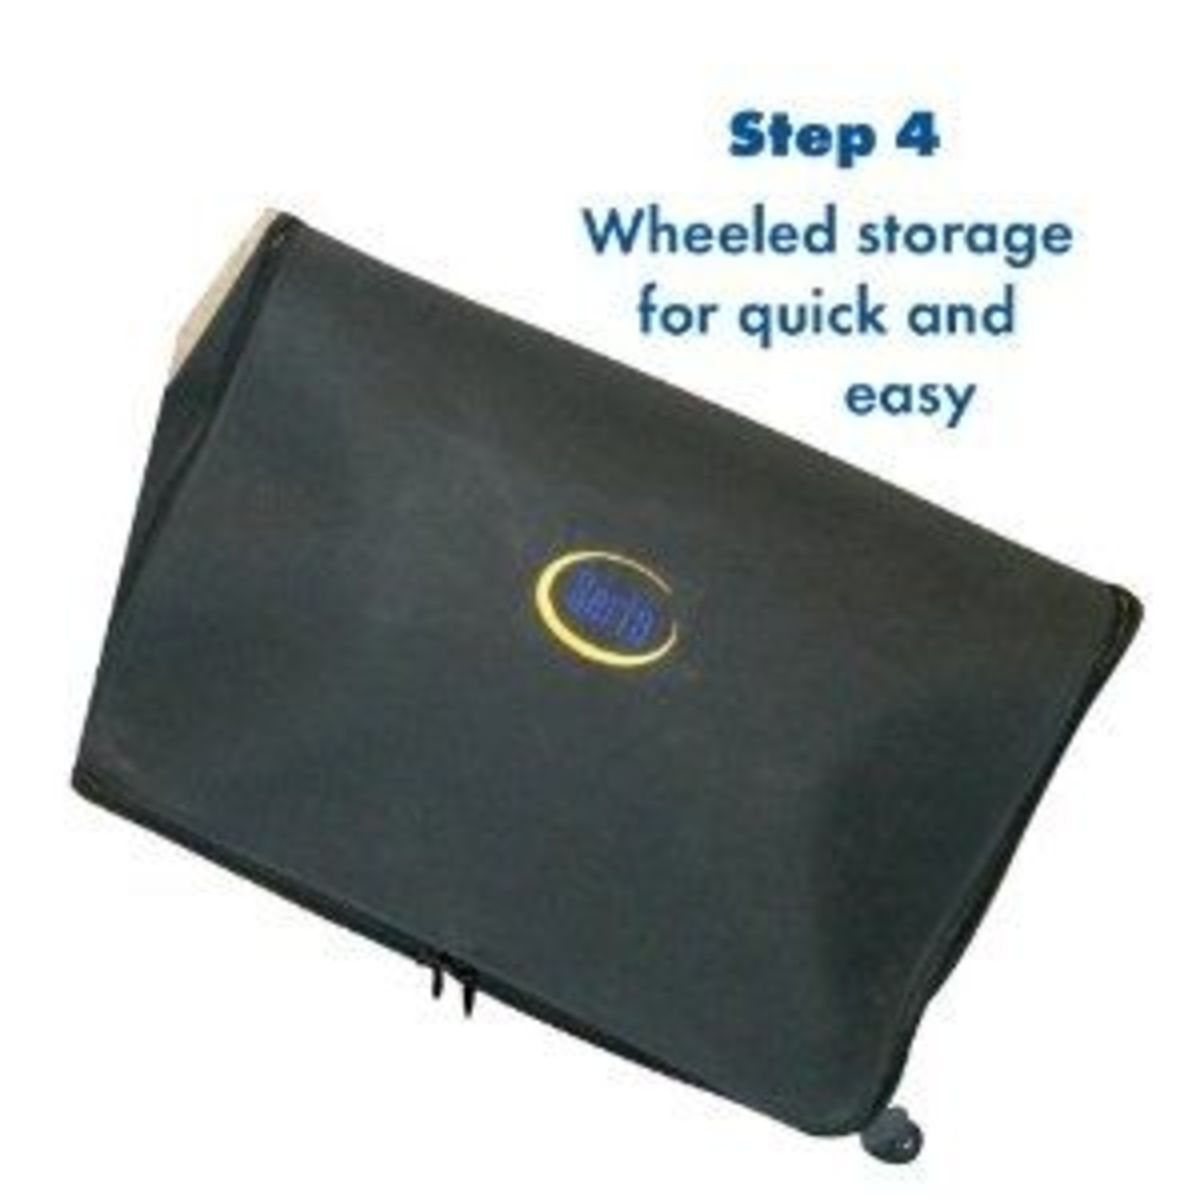 Serta EZ Bed Zipped Up for storage